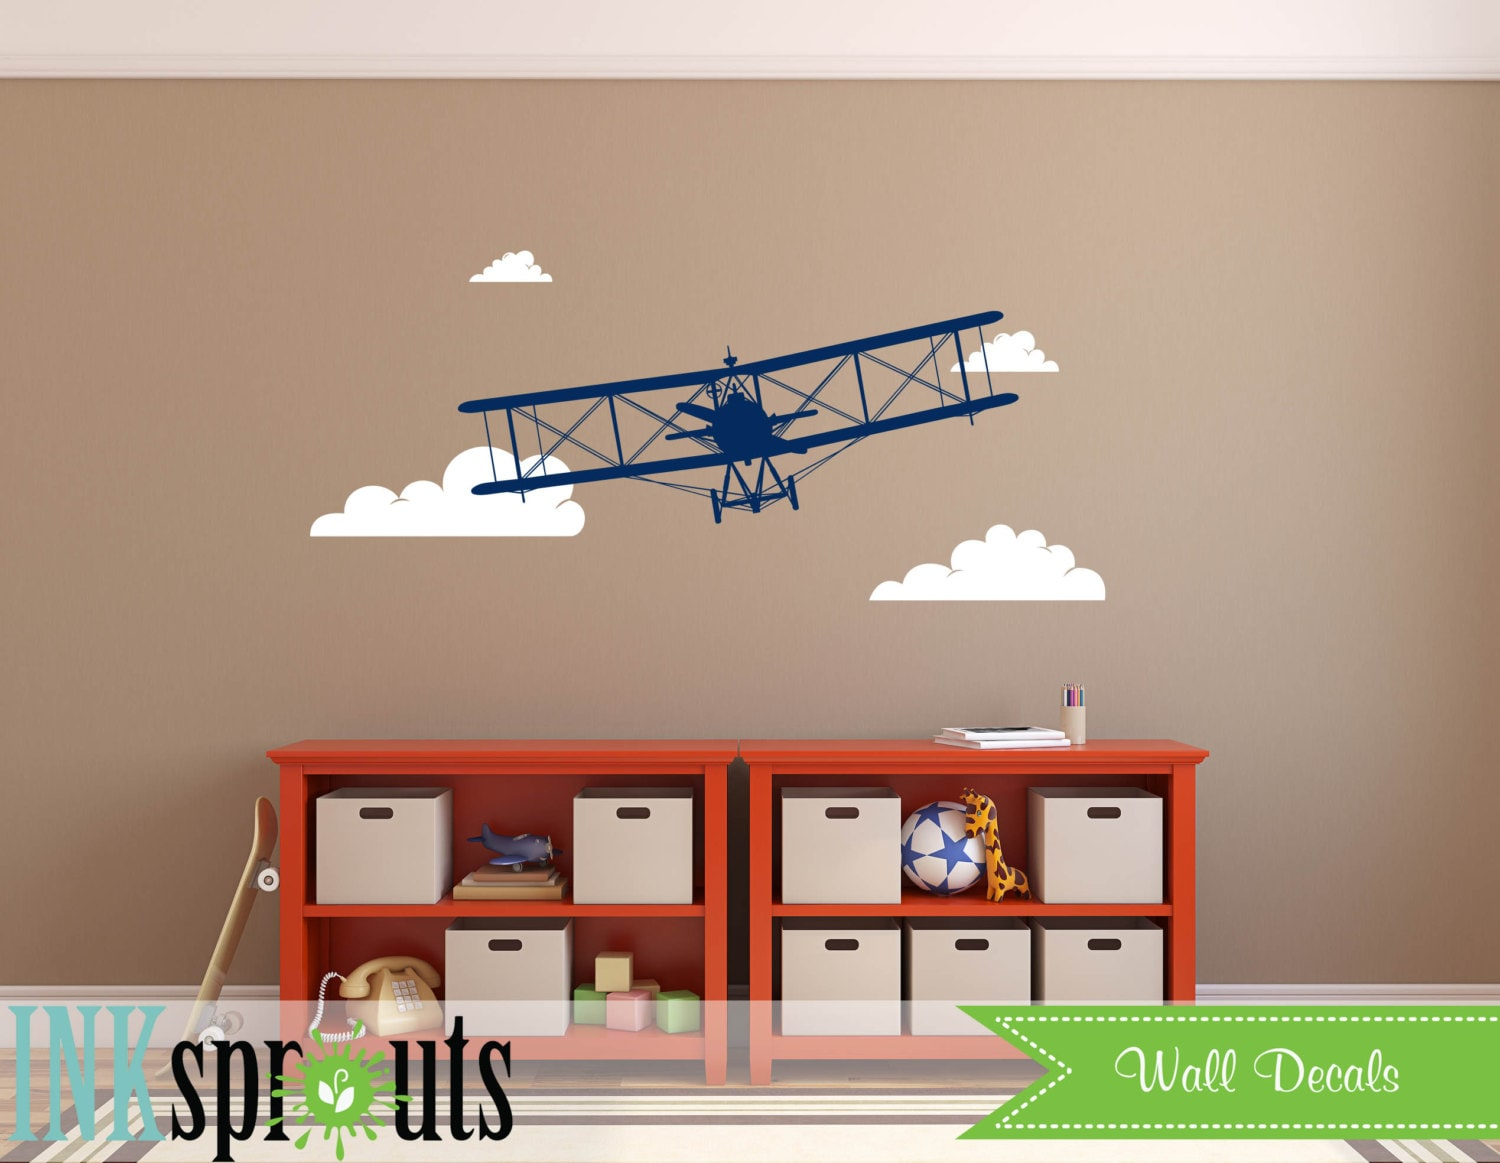 Airplane decal biplane decal large biplanetransportation decal airplane decal biplane decal large biplanetransportation decal skys the limit modern nursery nursery decals baby decals amipublicfo Gallery